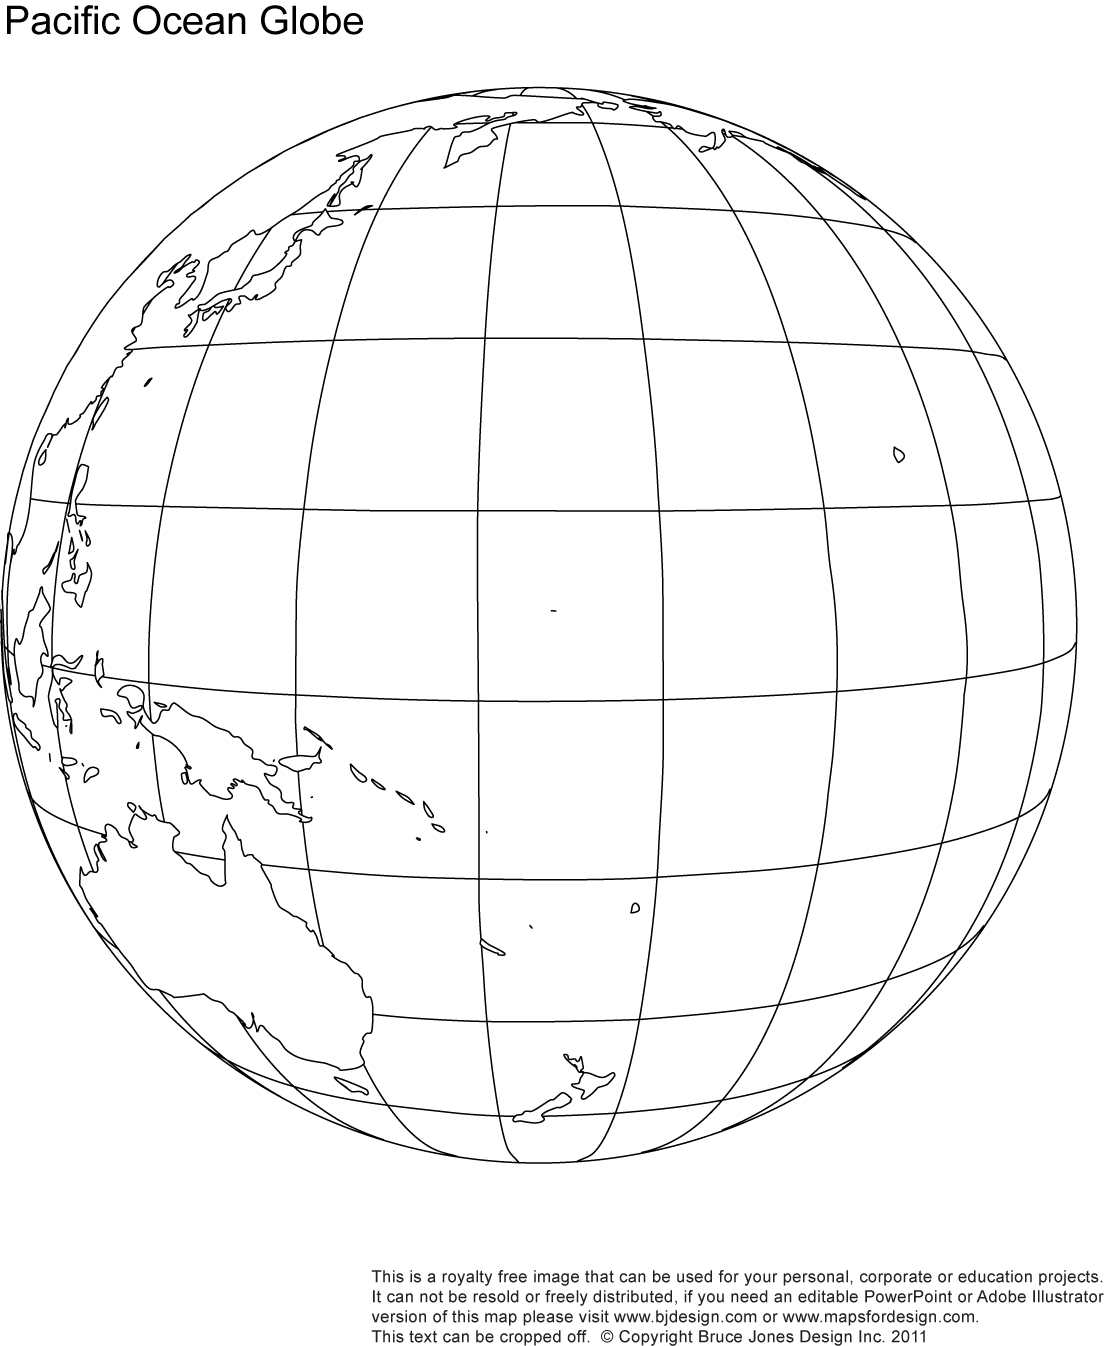 Printable, Blank, World Globe Earth Maps • Royalty Free, jpg on wwi map worksheet, parts of a map worksheet, parts of the earth worksheet, world map worksheet, oceans of the world worksheet, mapping diagram worksheet, spanish house worksheet, map lesson worksheet, lines of latitude worksheet, mercantilism worksheet, continents puzzle worksheet, drawing faces worksheet, road map of life worksheet,